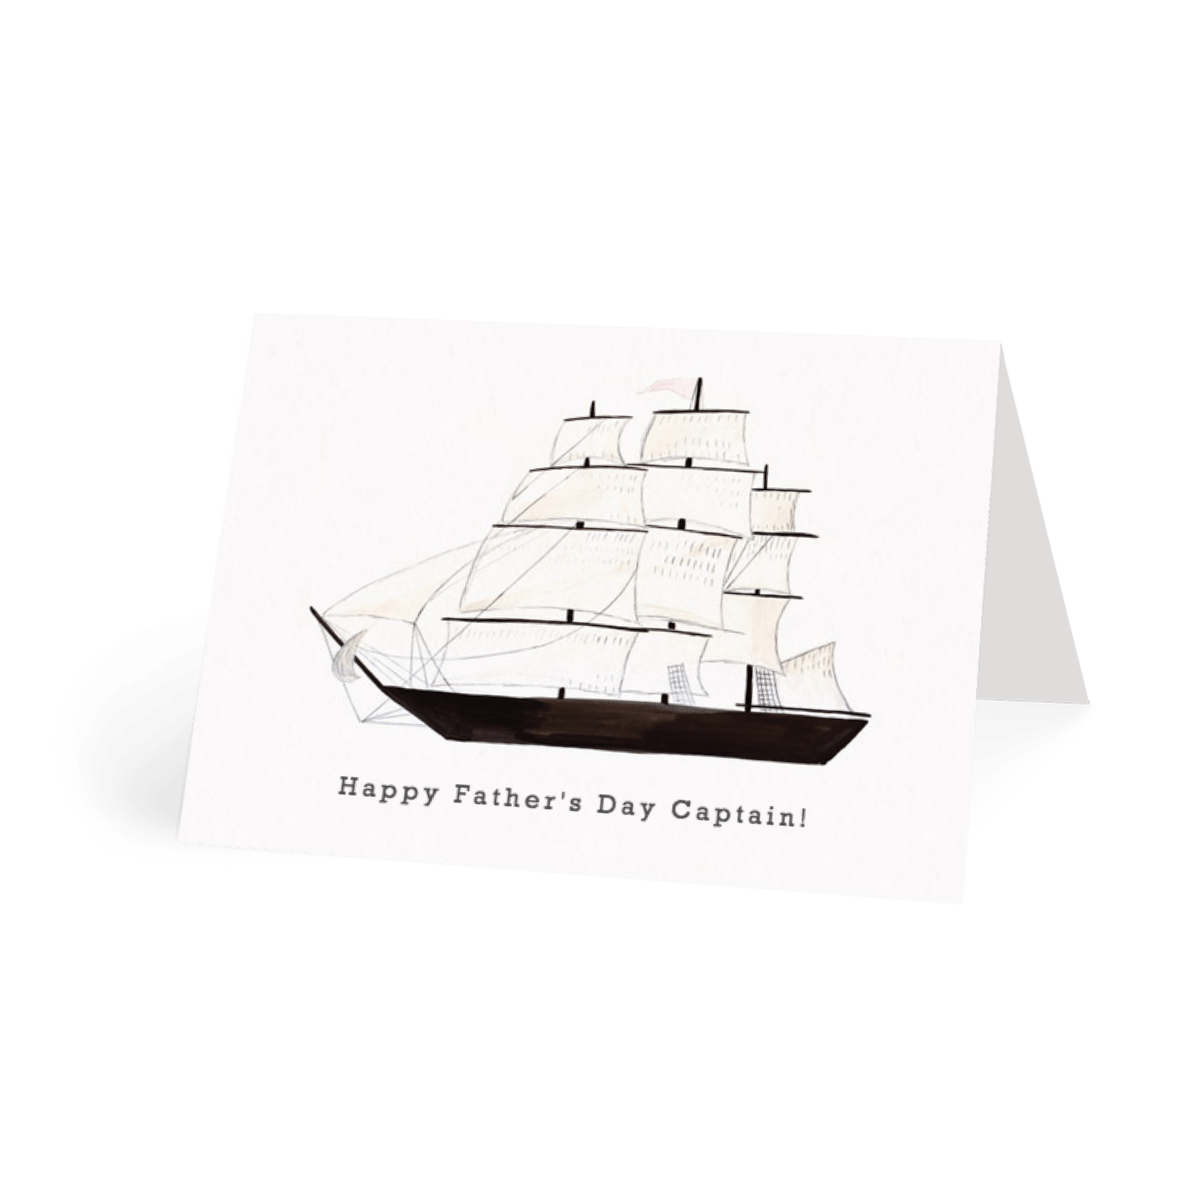 Https%3a%2f%2fwww.papier.com%2fproduct image%2f7551%2f14%2fclipper ship 1862 front 1464177959.png?ixlib=rb 1.1